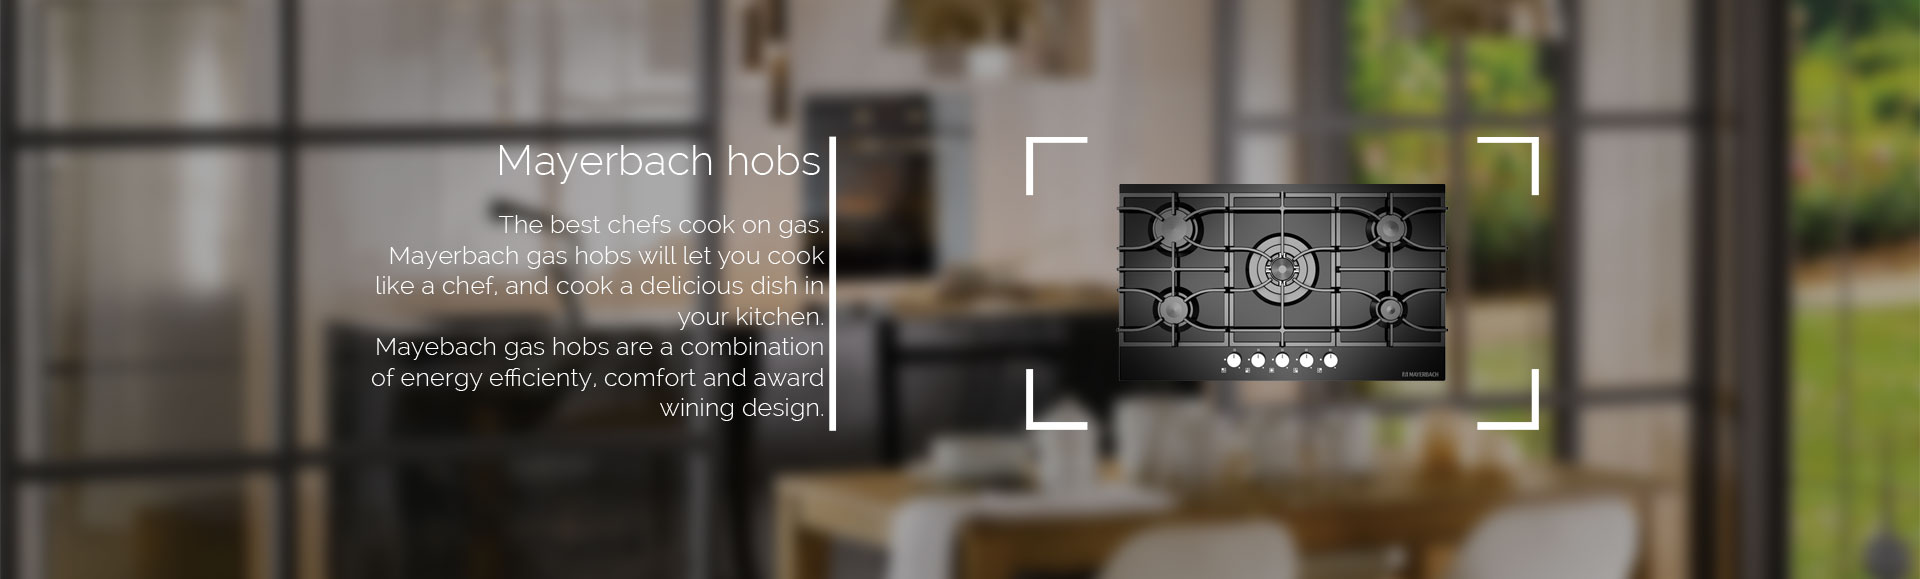 The best chefs cook on gas. Mayerbach gas hobs will let you cook like a chef, and cook a delicious dish in your kitchen. Mayebach gas hobs are a combination of energy efficienty, comfort and award wining design.